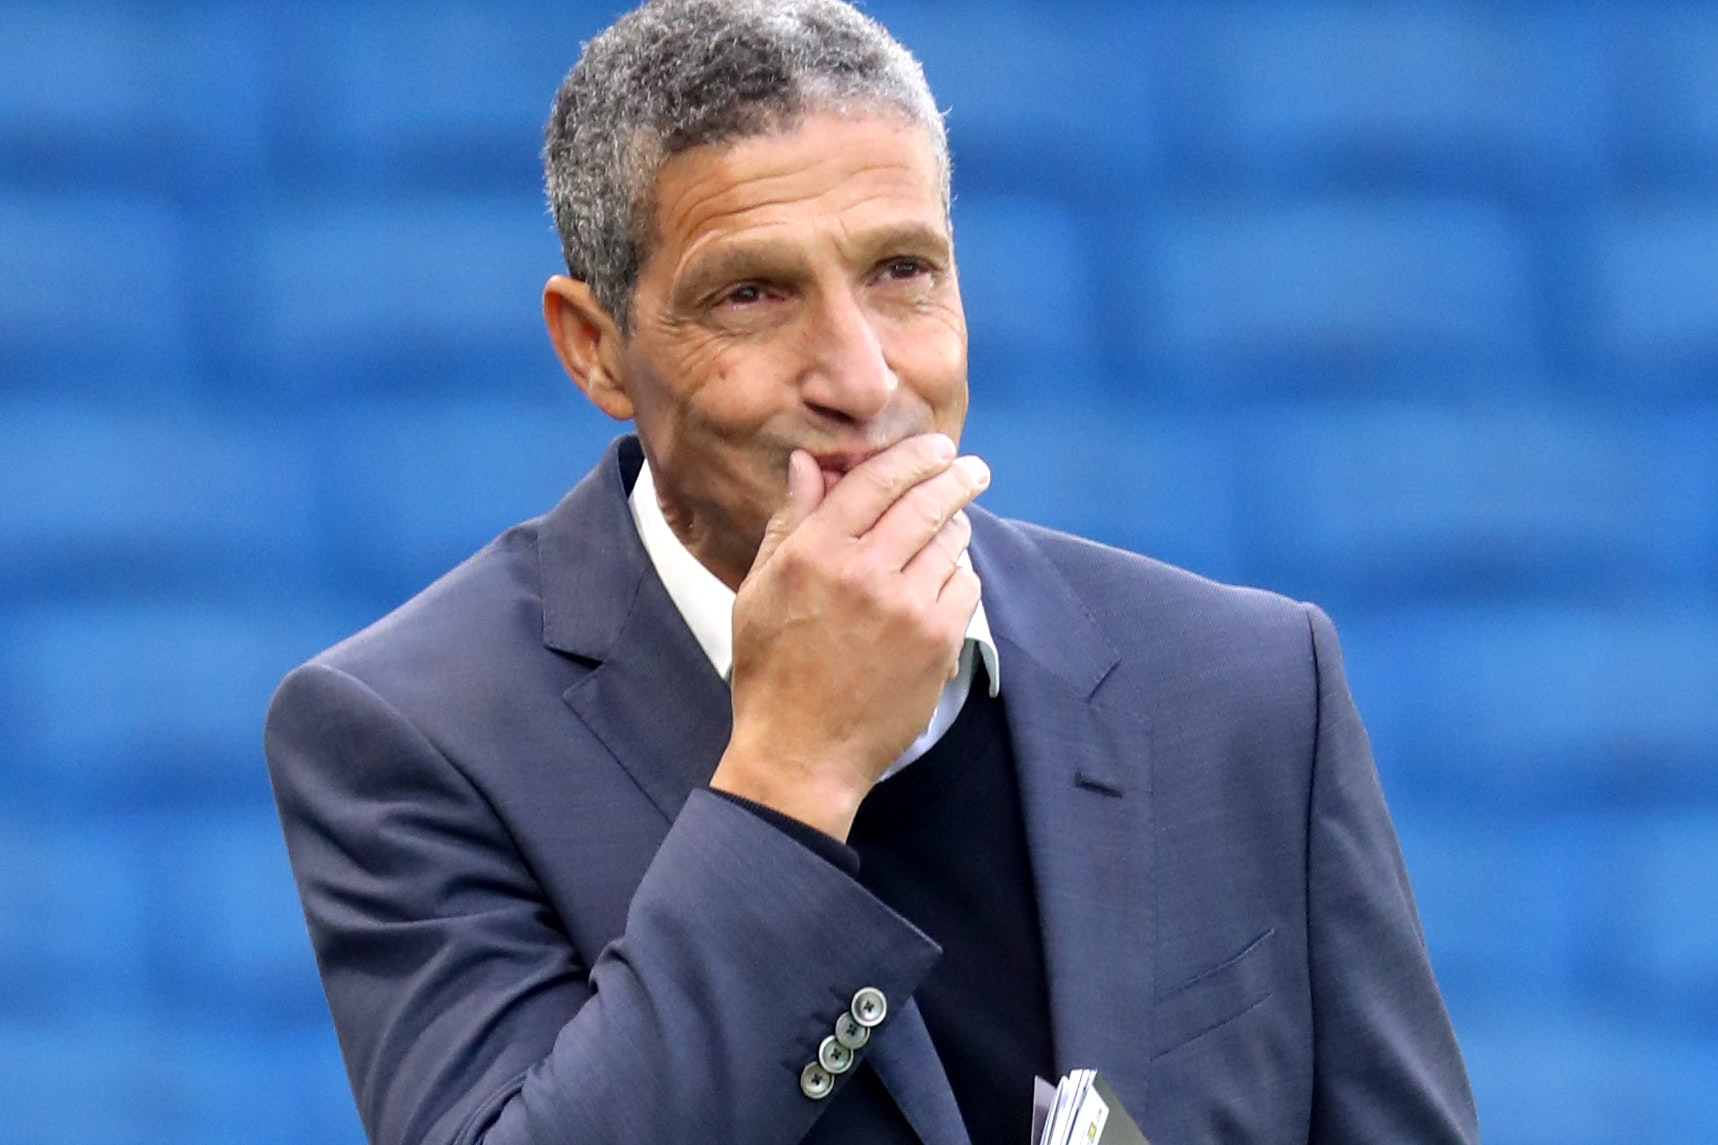 Chris Hughton is preparing to face Manchester United